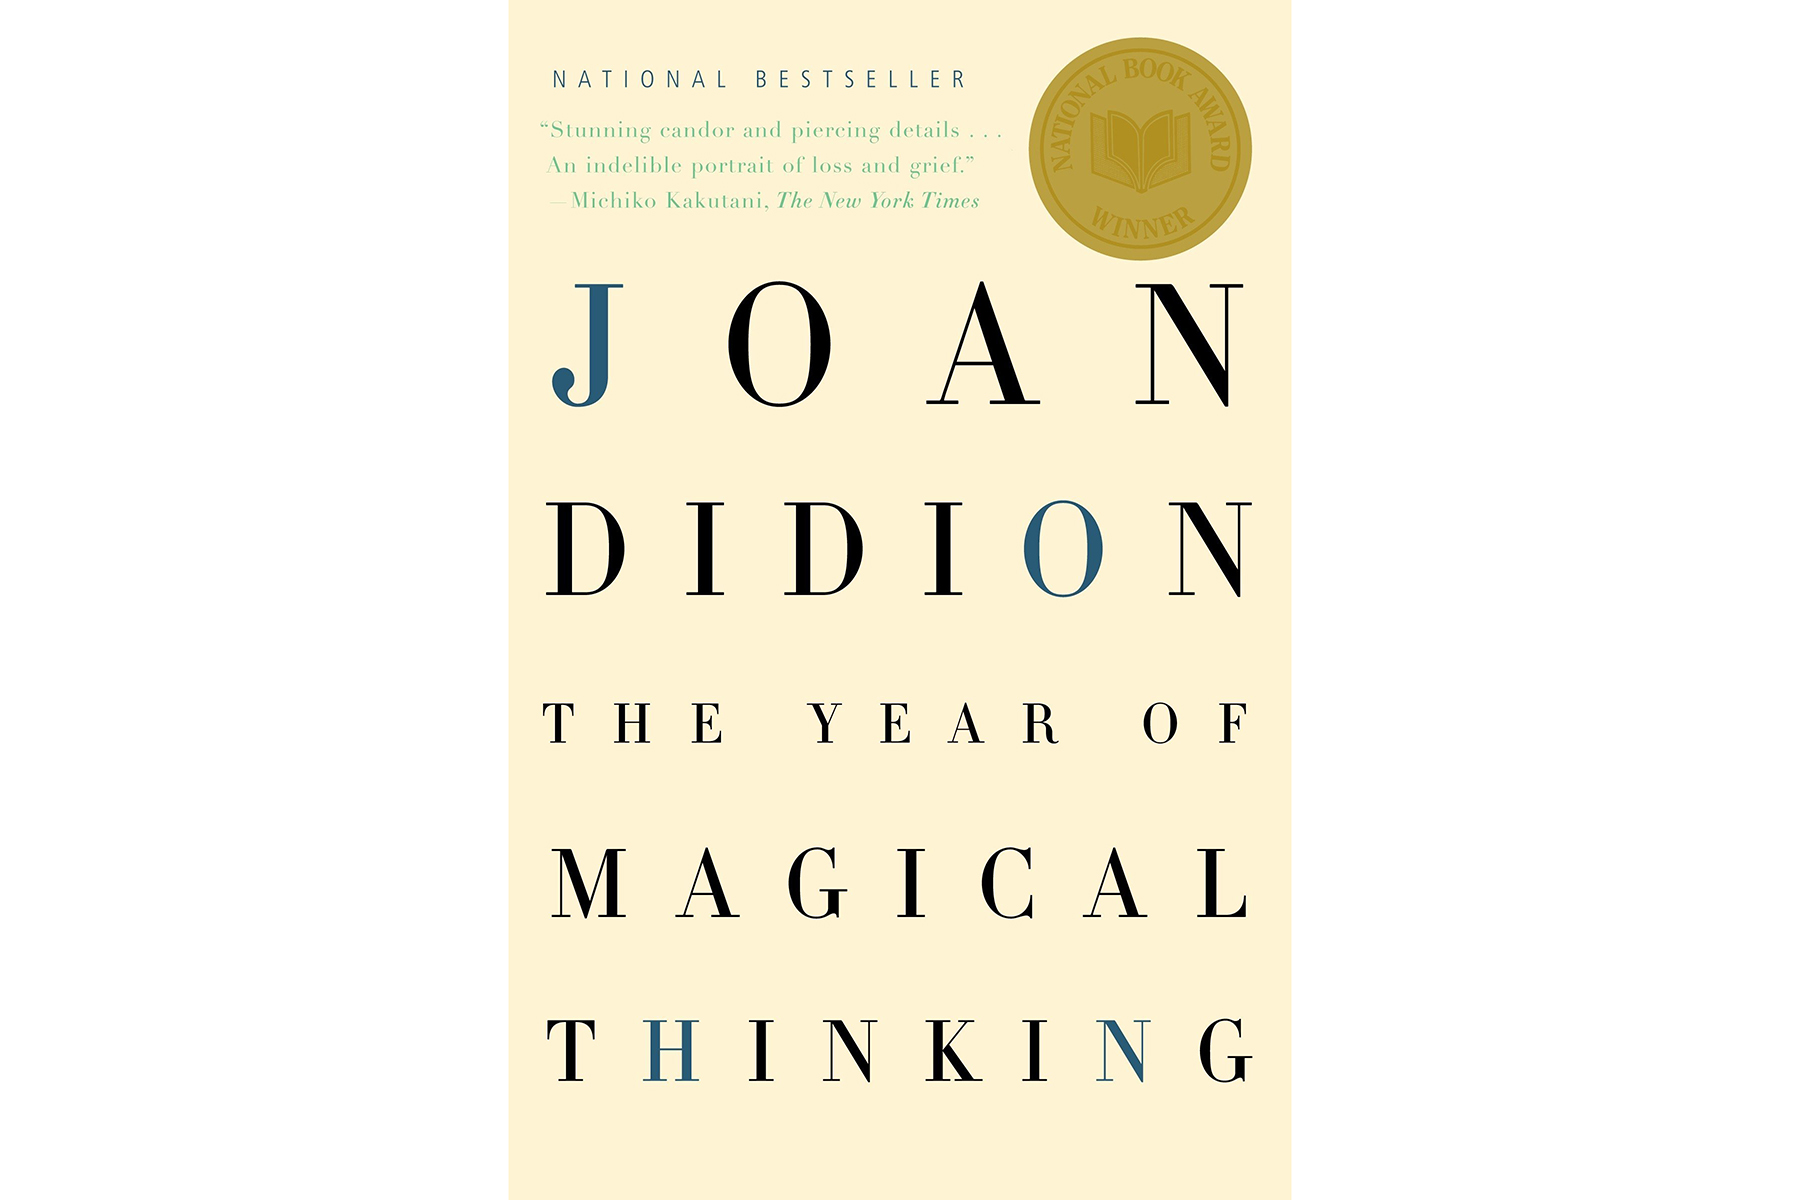 The Year of Magical Thinking, by Joan Didion (loss books)